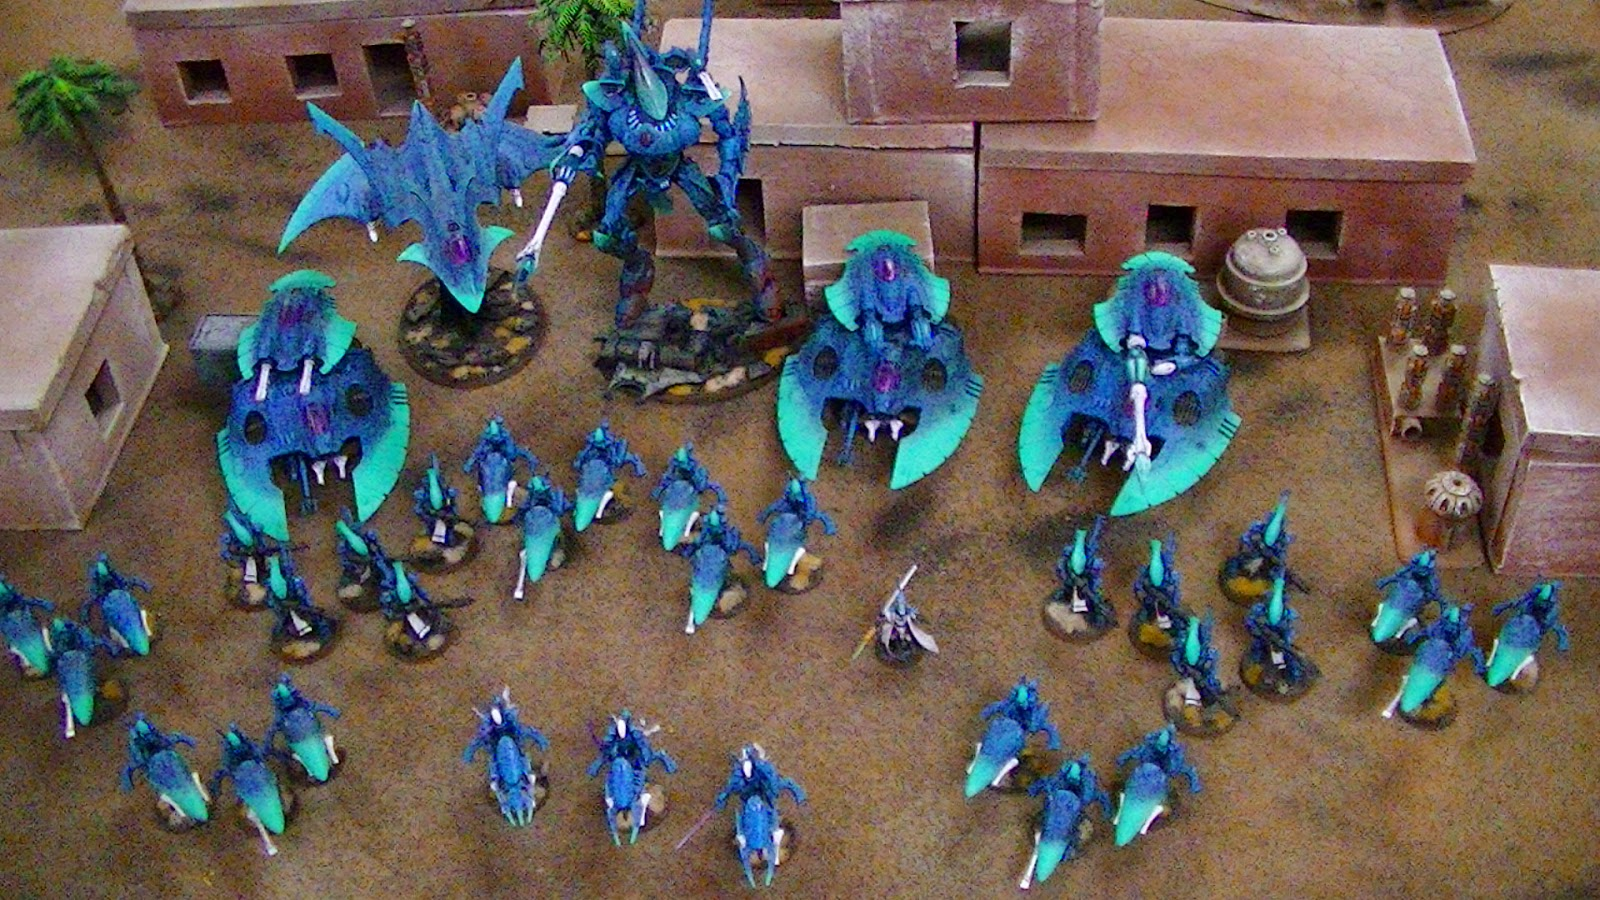 Blue table painting eldar mymeara army for sale army list publicscrutiny Image collections